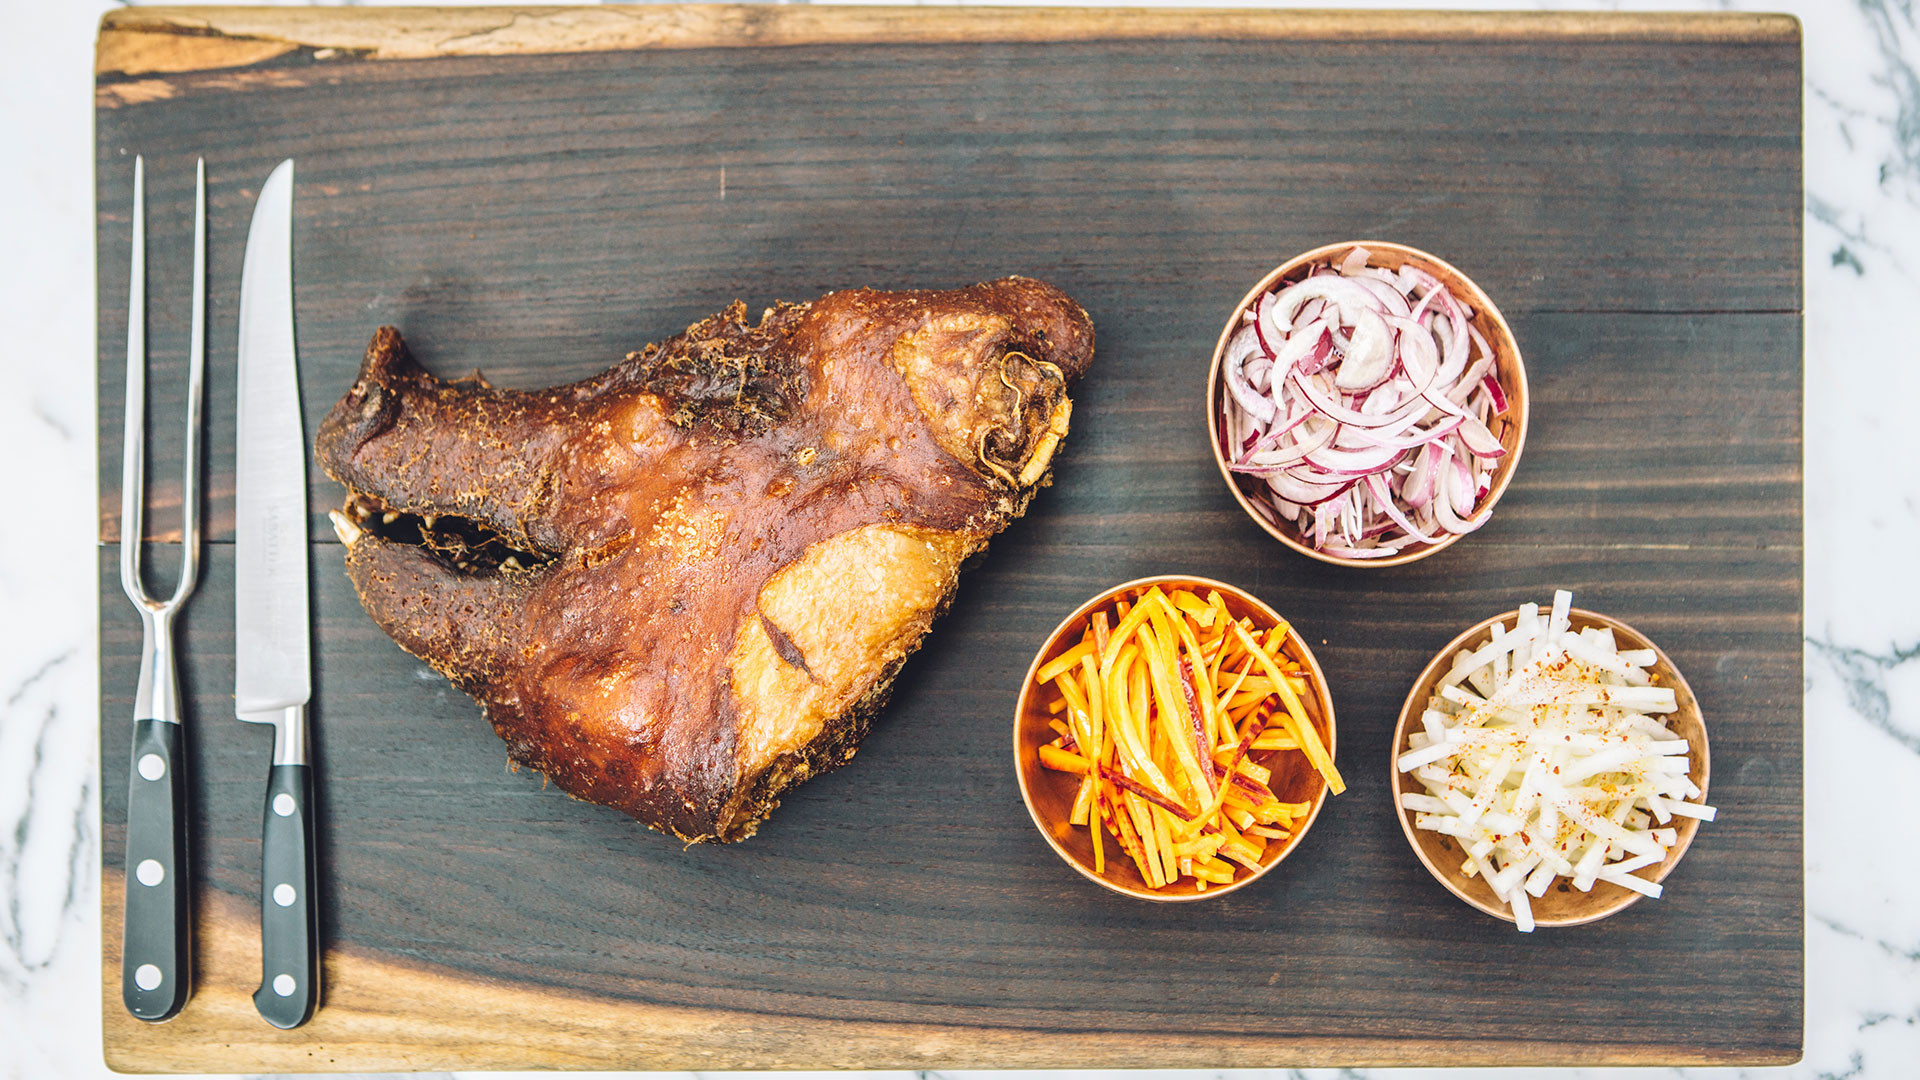 The rare-breed pig's head large bab from Le Bab